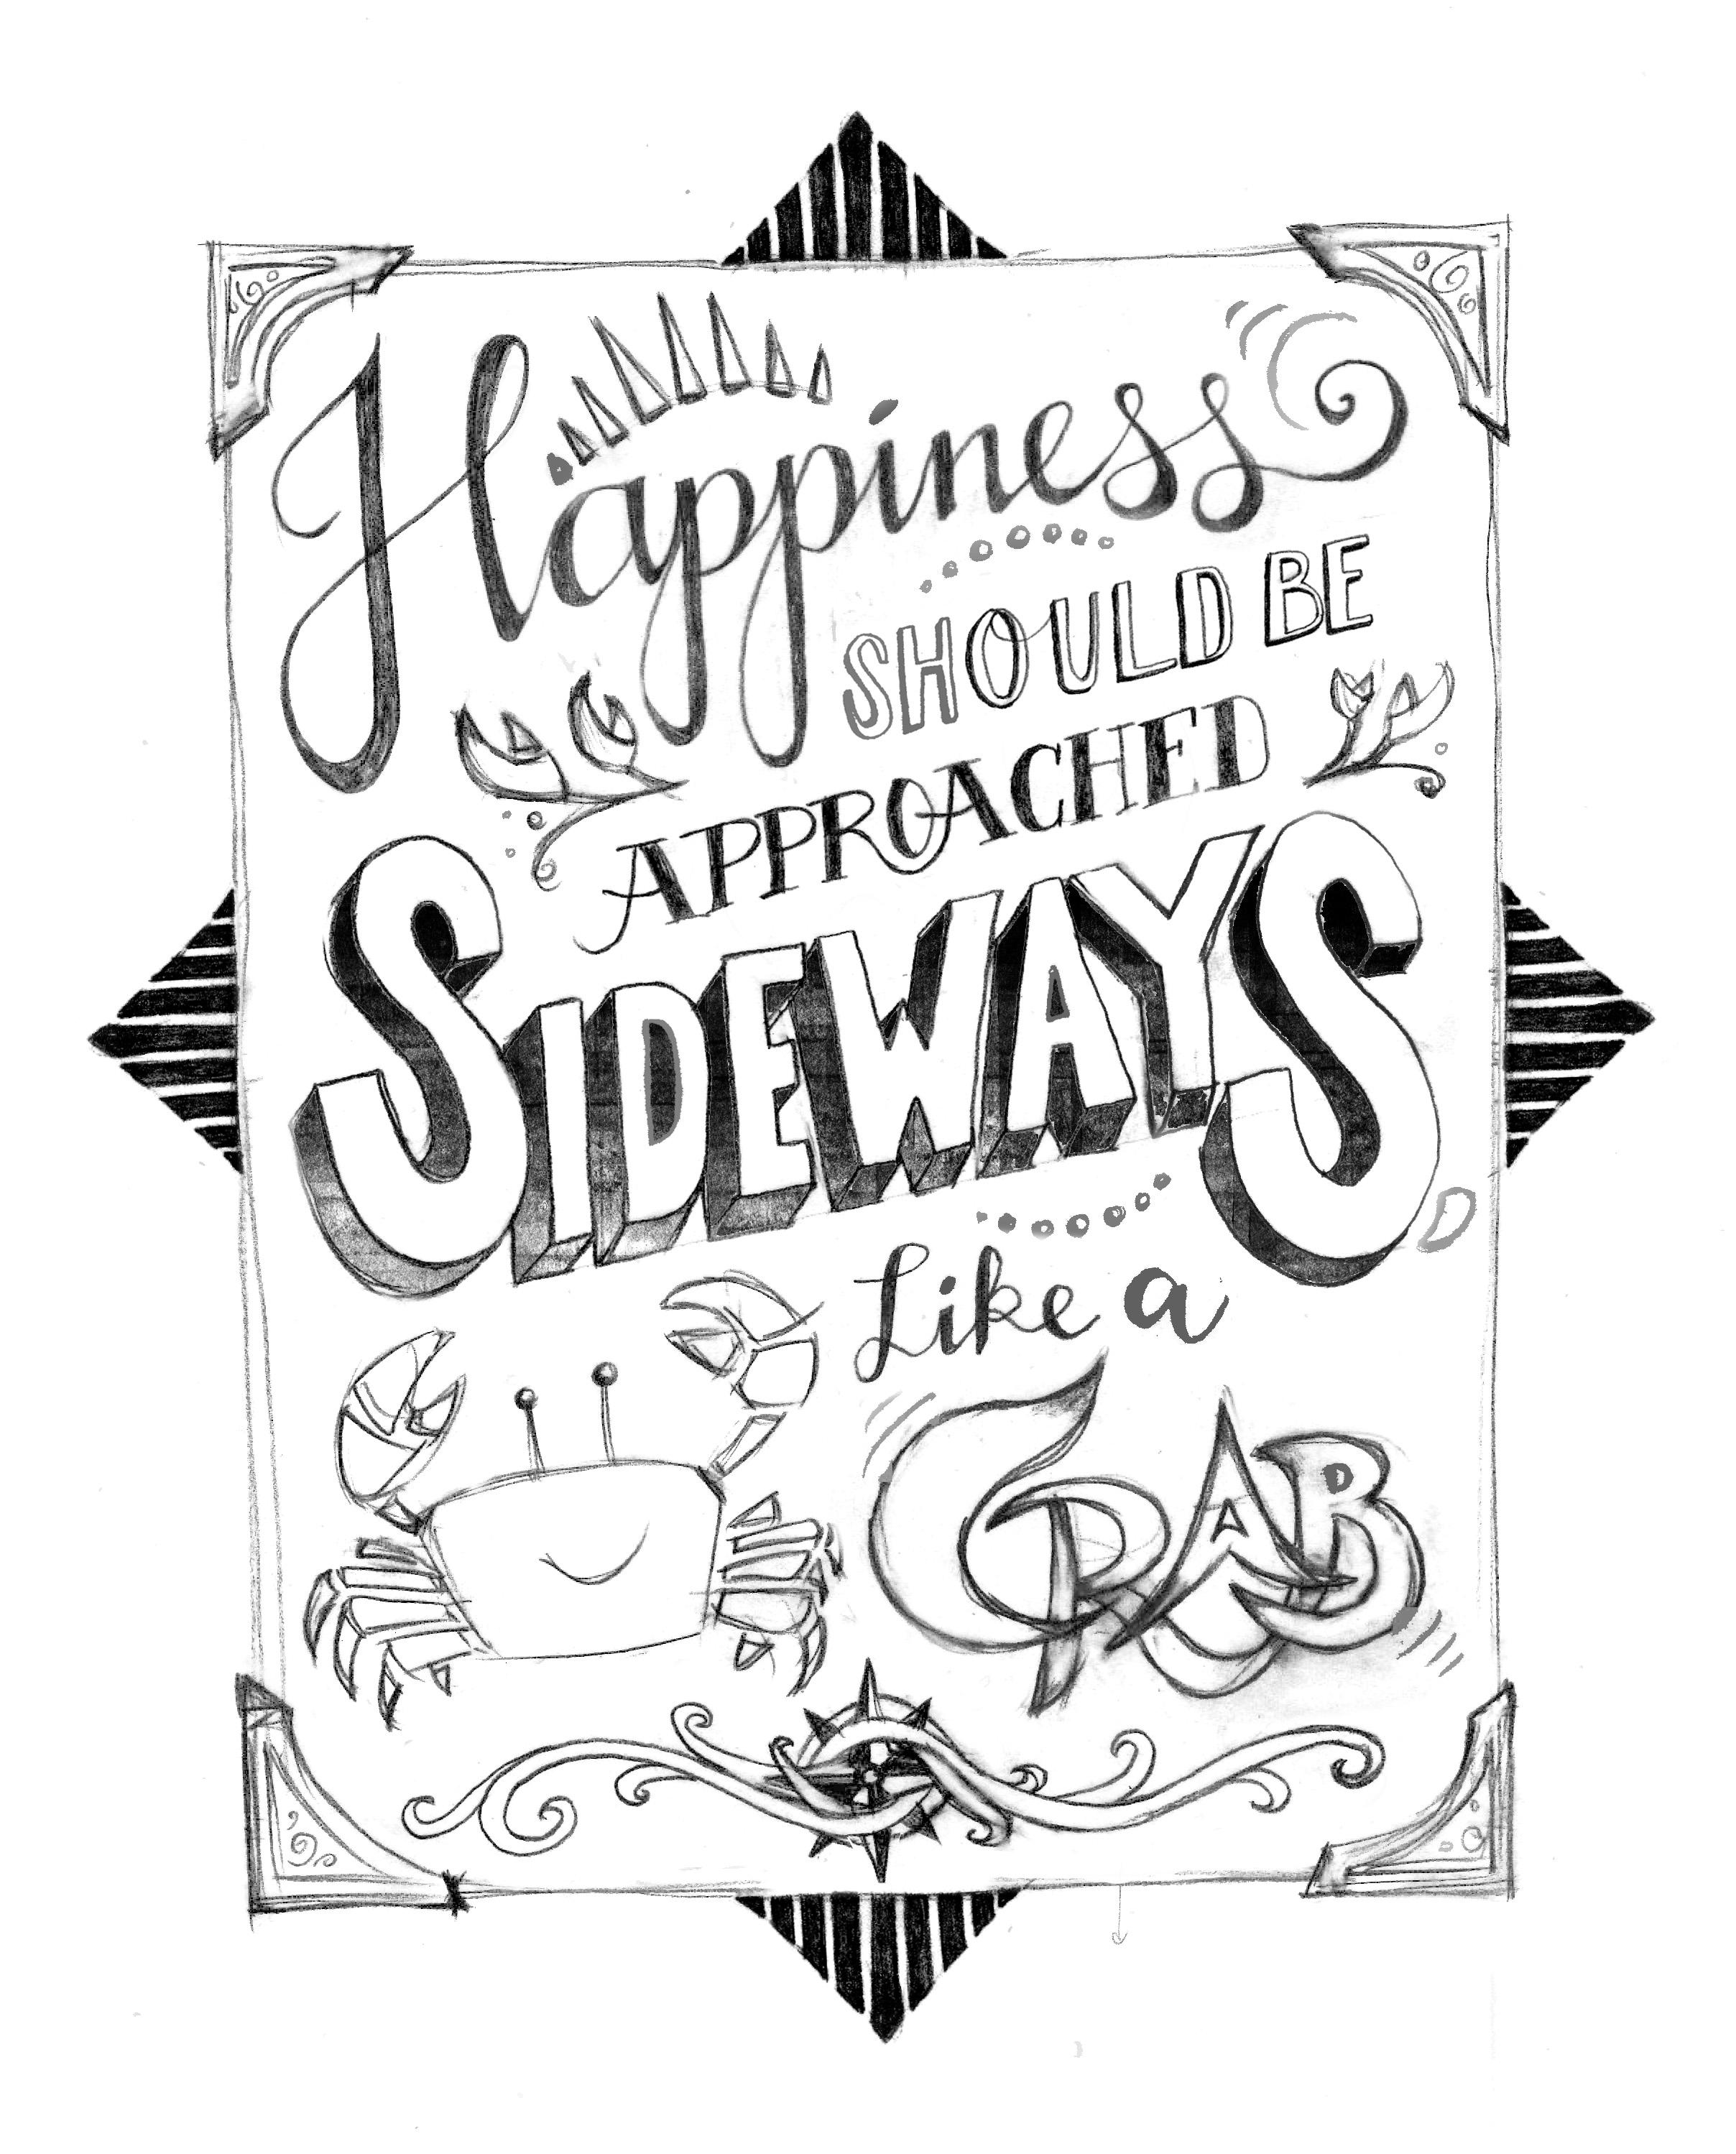 Happiness should be approached sideways, like a crab. - image 9 - student project